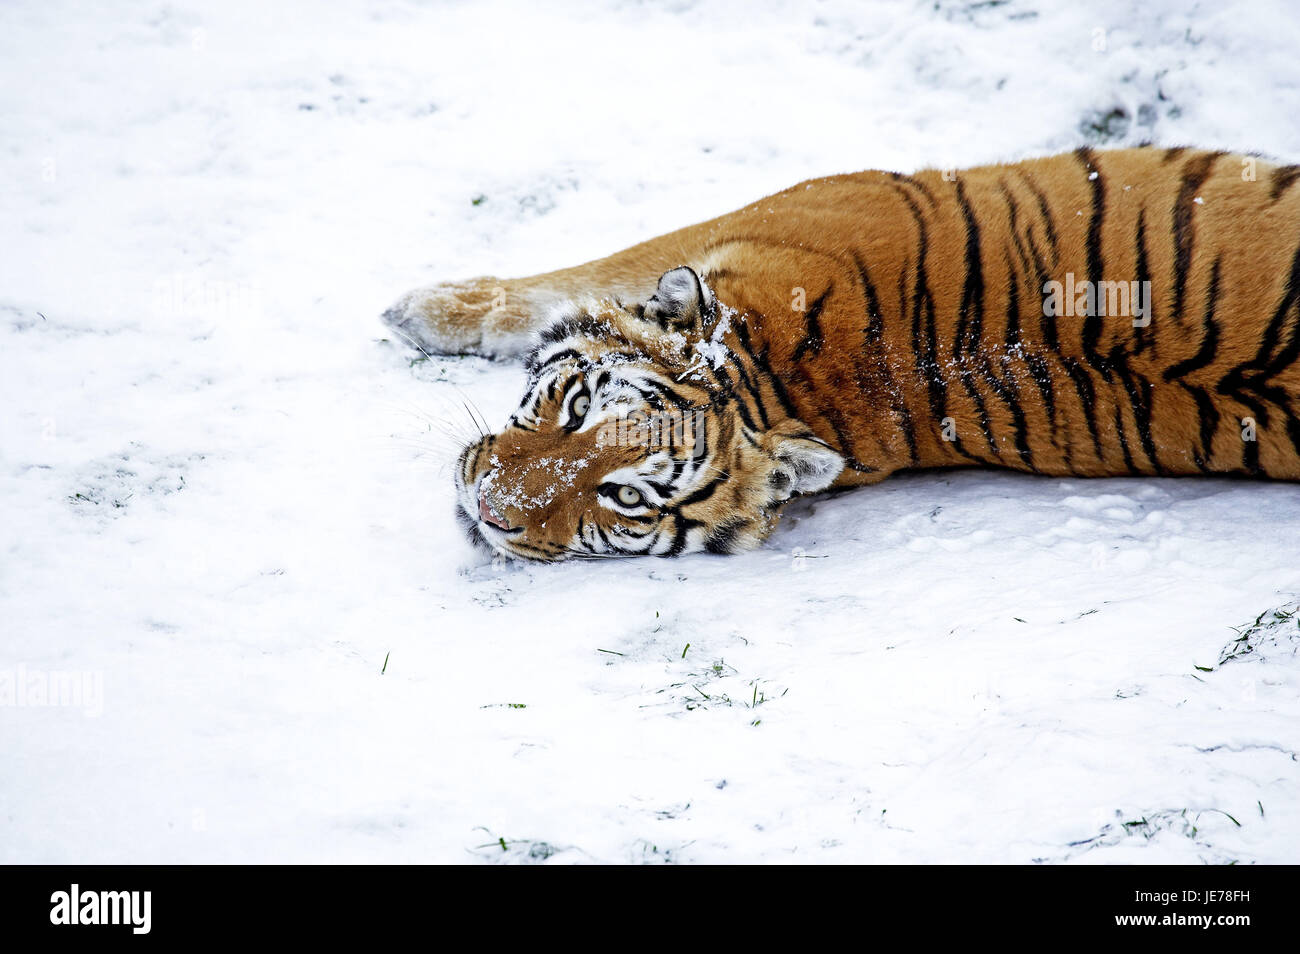 Siberian tigers, Panthera tigris altaica, also Amur tiger, adult animal, stand, snow, - Stock Image